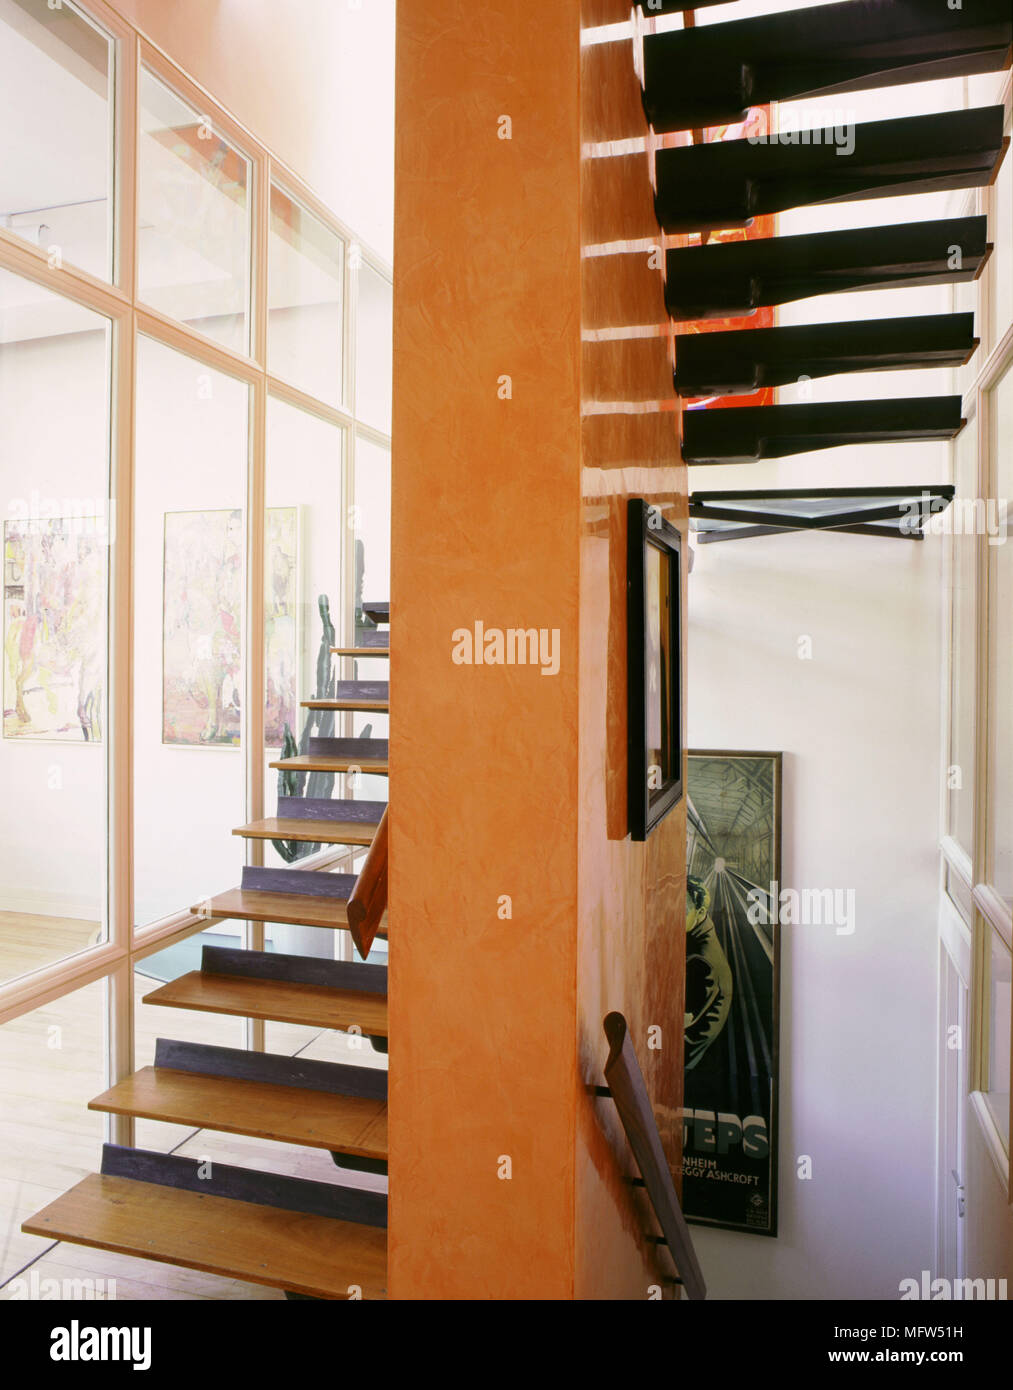 Modern Open Plan Staircase Suspended Wooden Treads Orange Walls Glass Panels Stock Photo Alamy